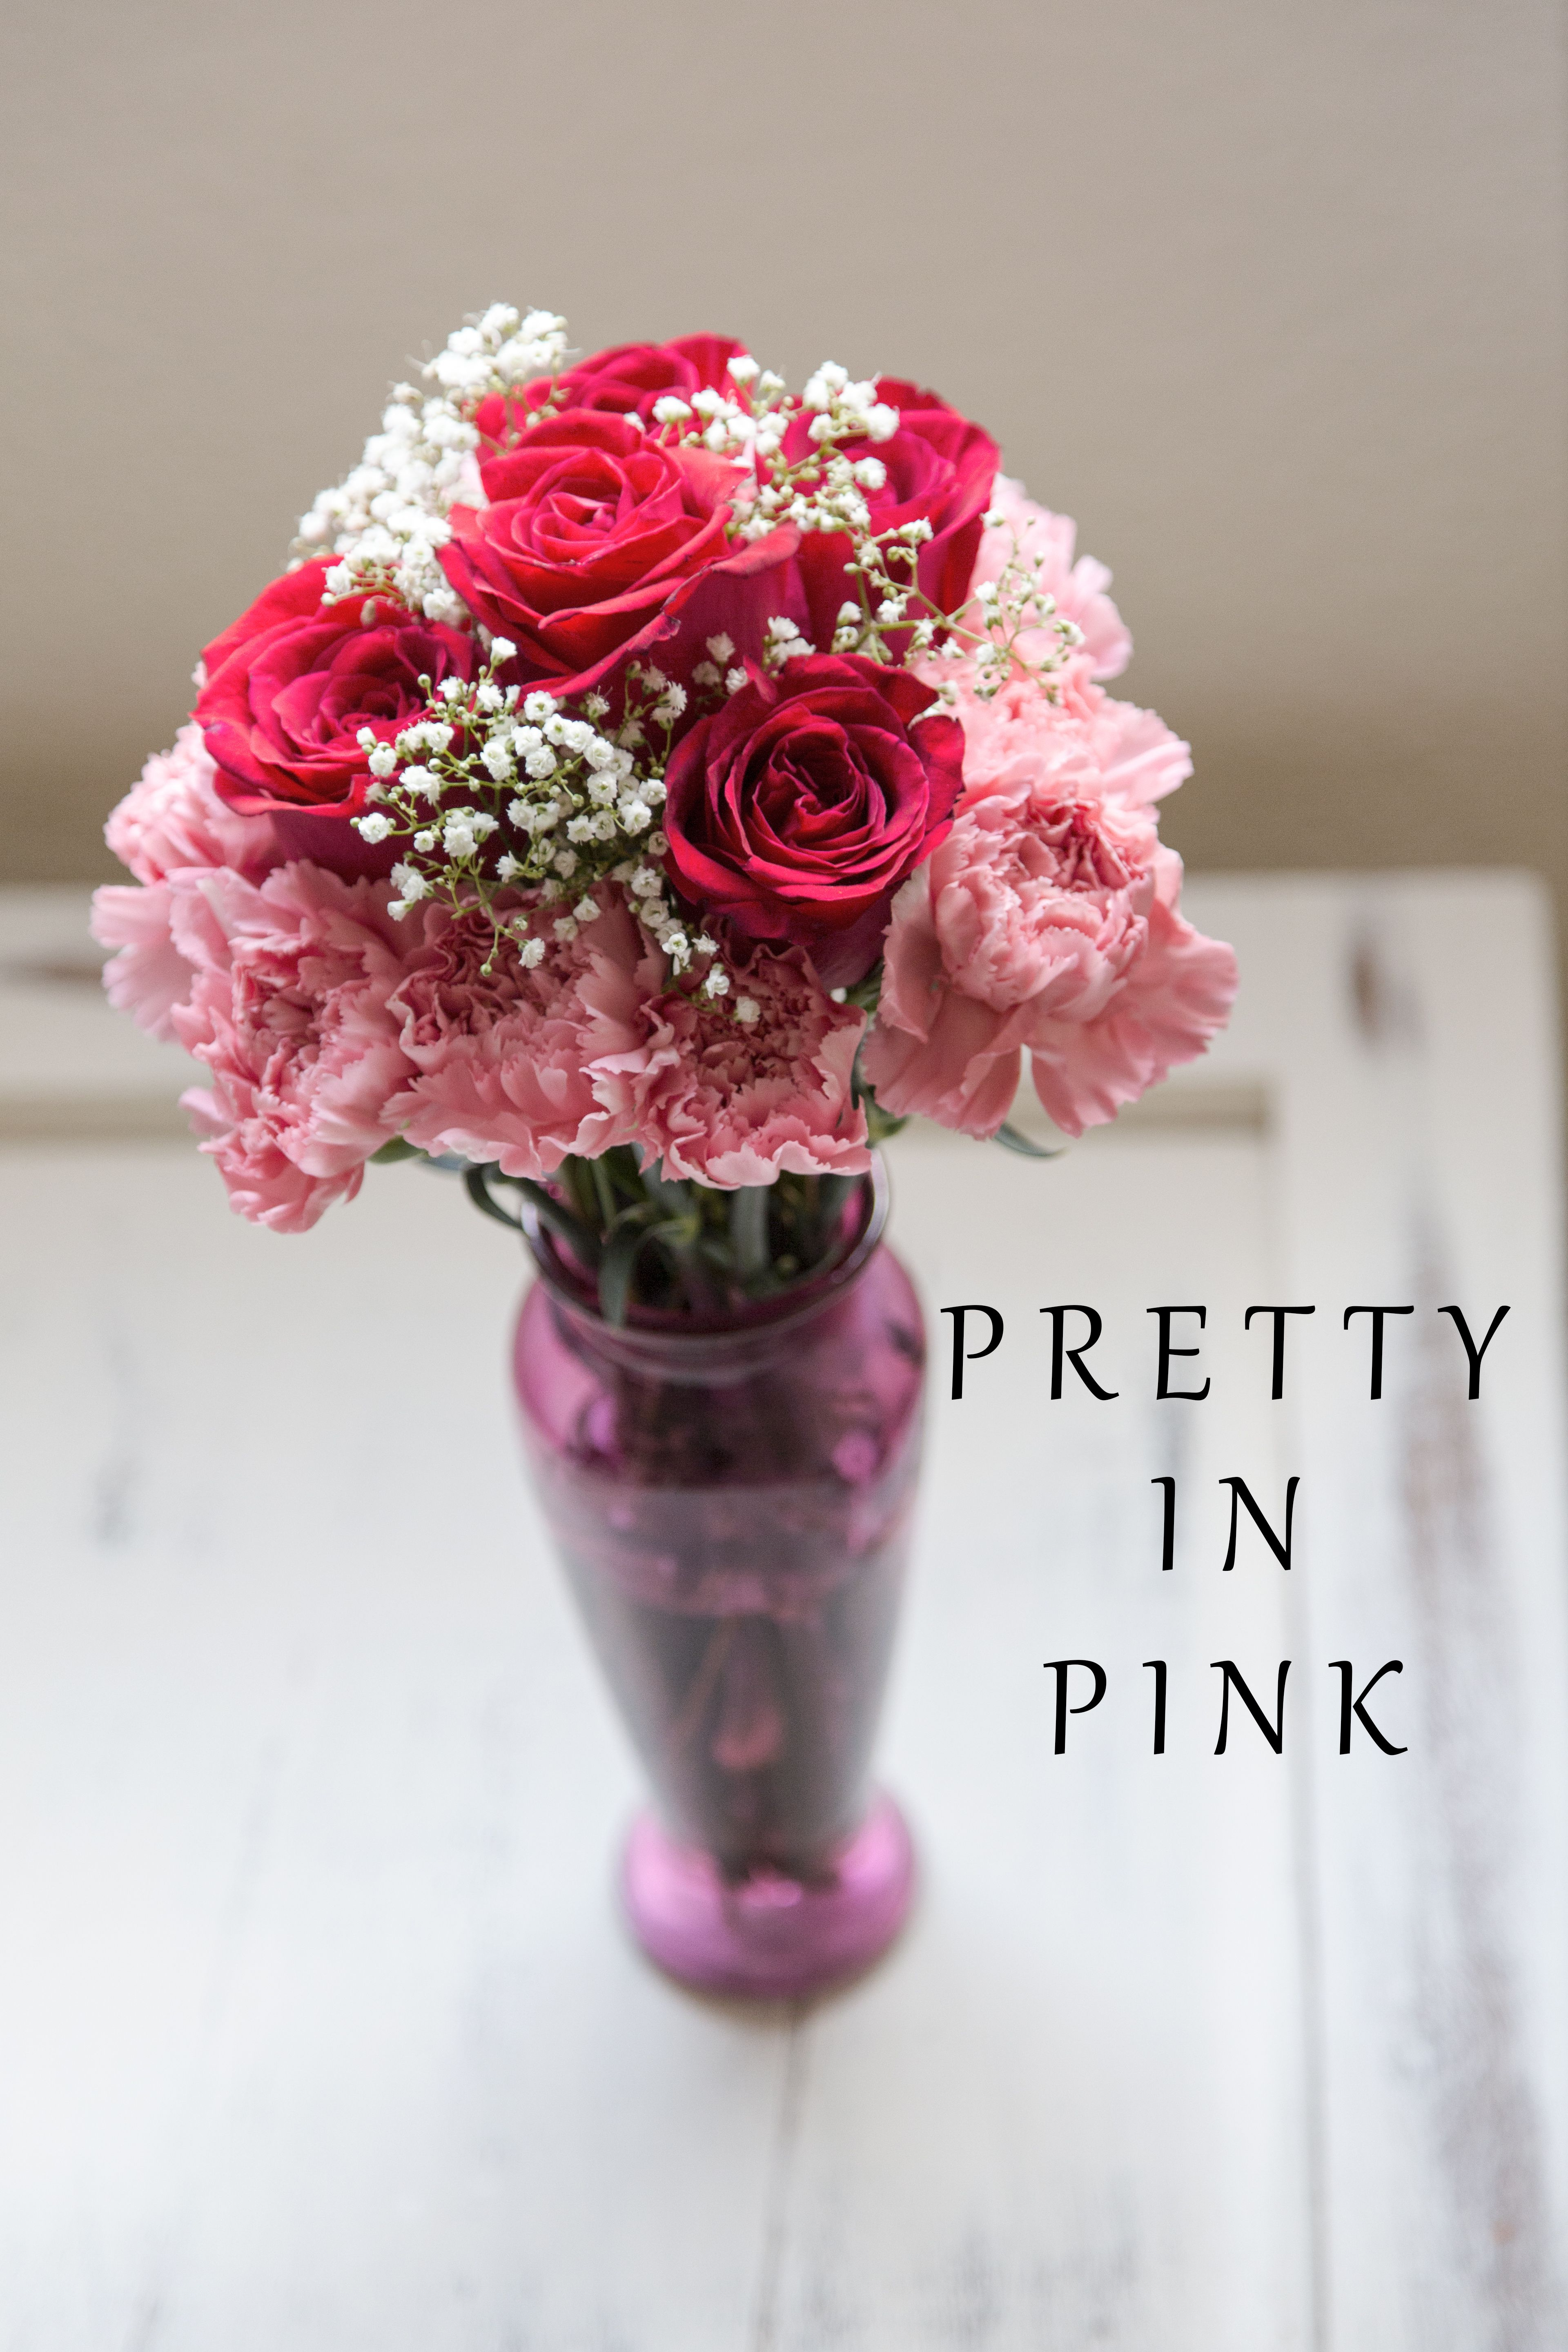 Pin by Alexia's Garden on Flowers Pretty in pink